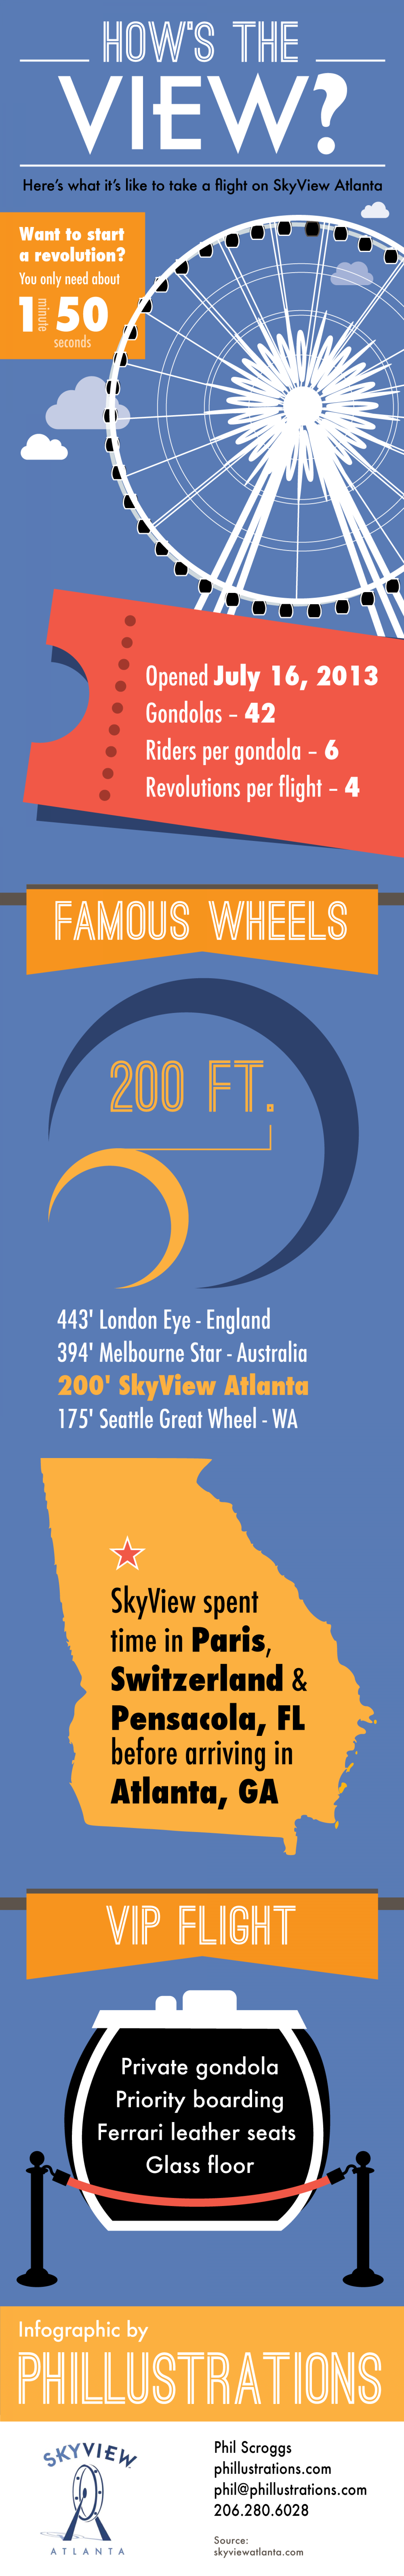 How's the View from SkyView Atlanta?  Infographic